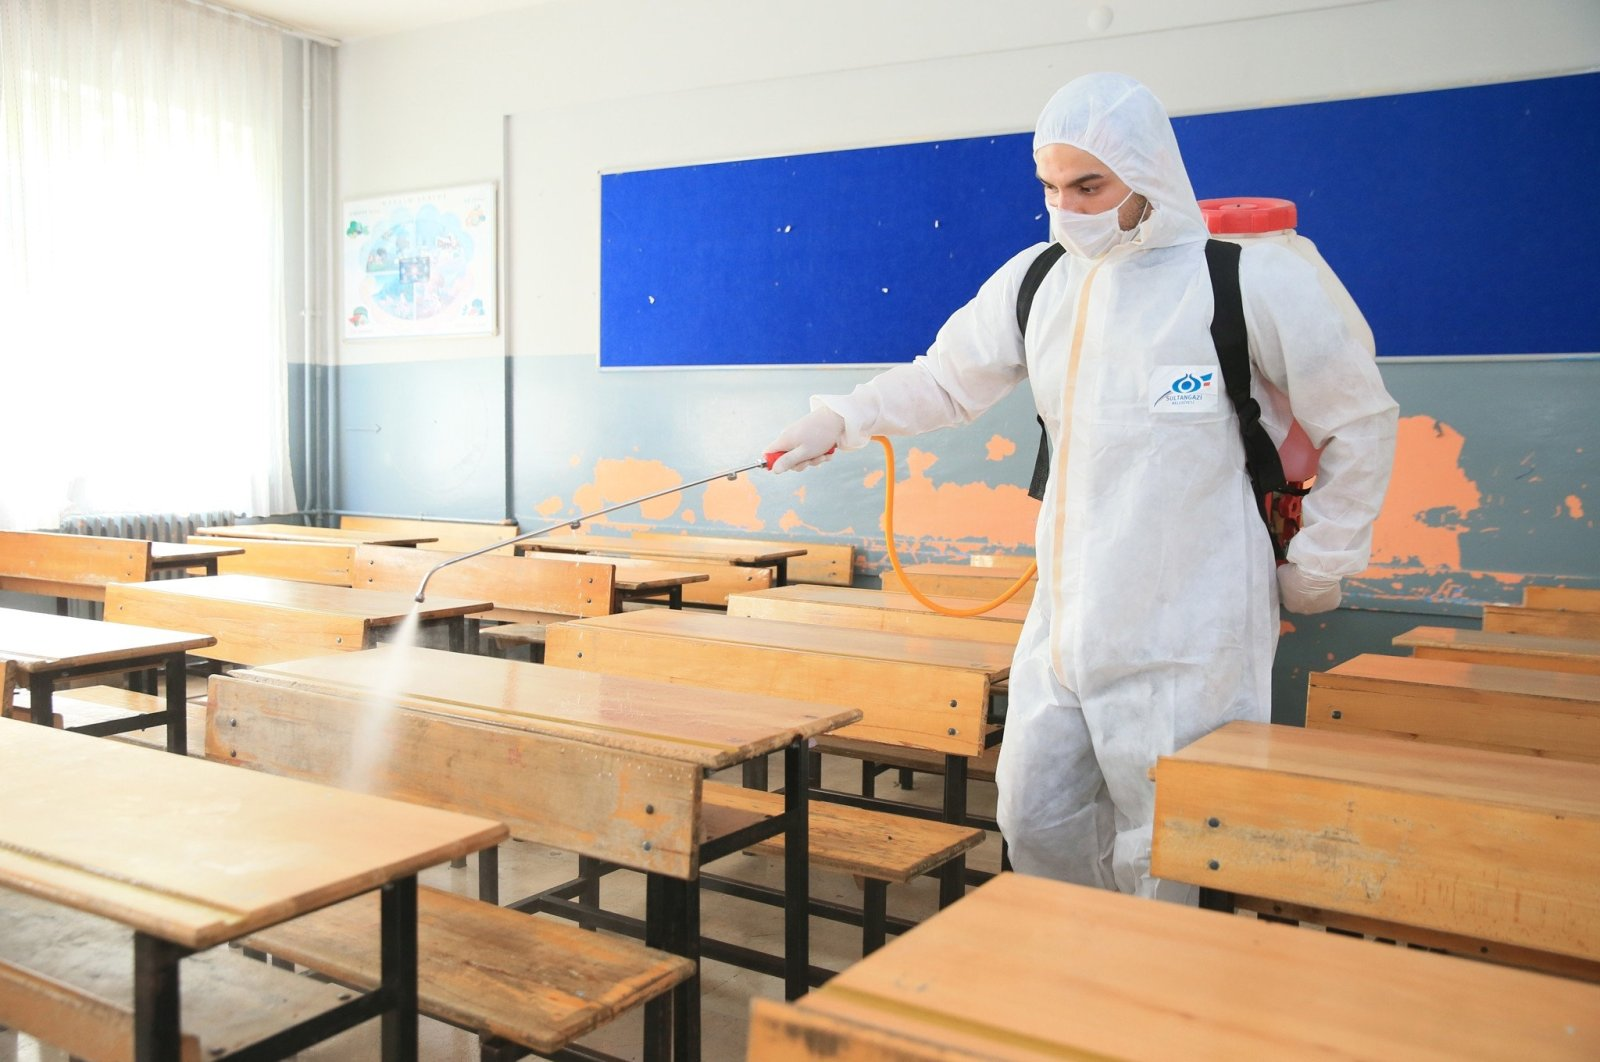 A worker from the Sultangazi Municipality sanitizes a classroom in Istanbul on June 19, 2020. (IHA Photo)